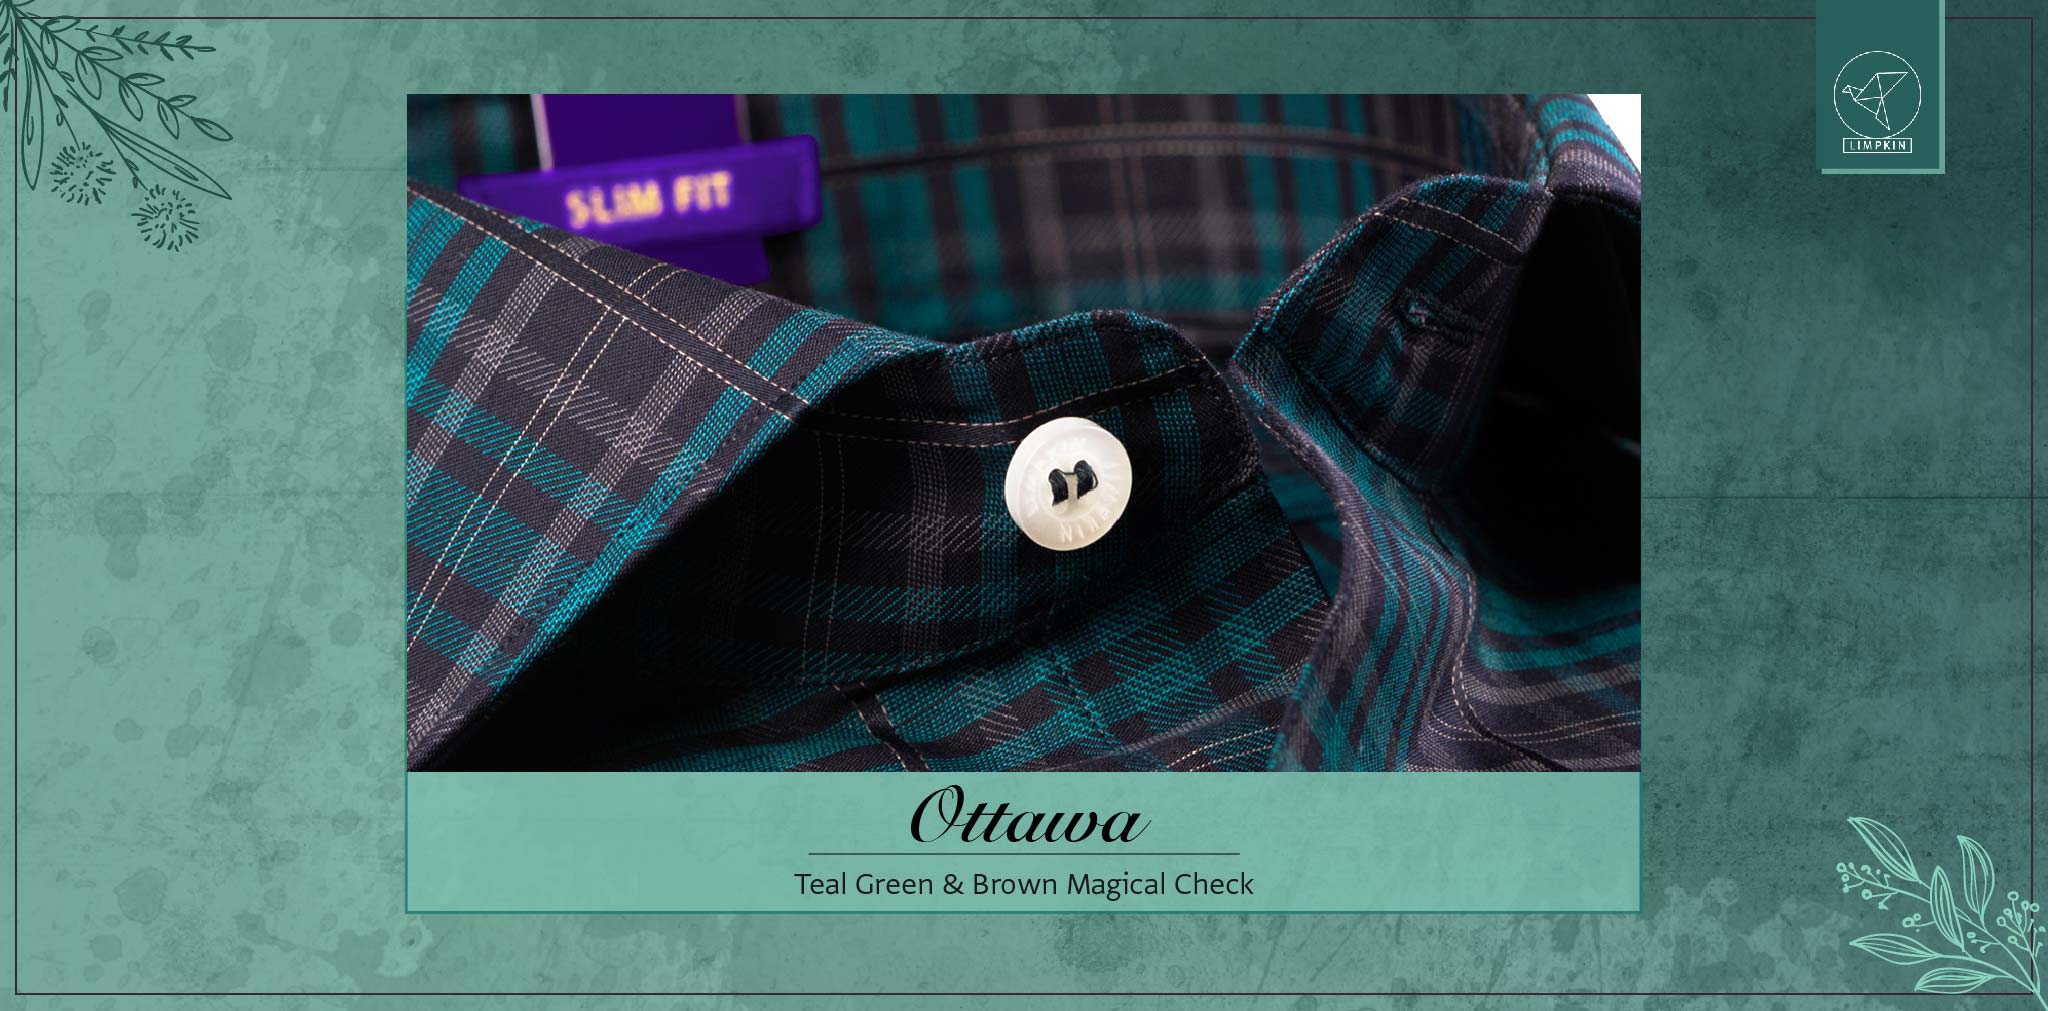 Ottawa- Teal Green & Brown Check- 2 Ply Pure Egyptian Giza Cotton- Delivery from 3rd March - Banner